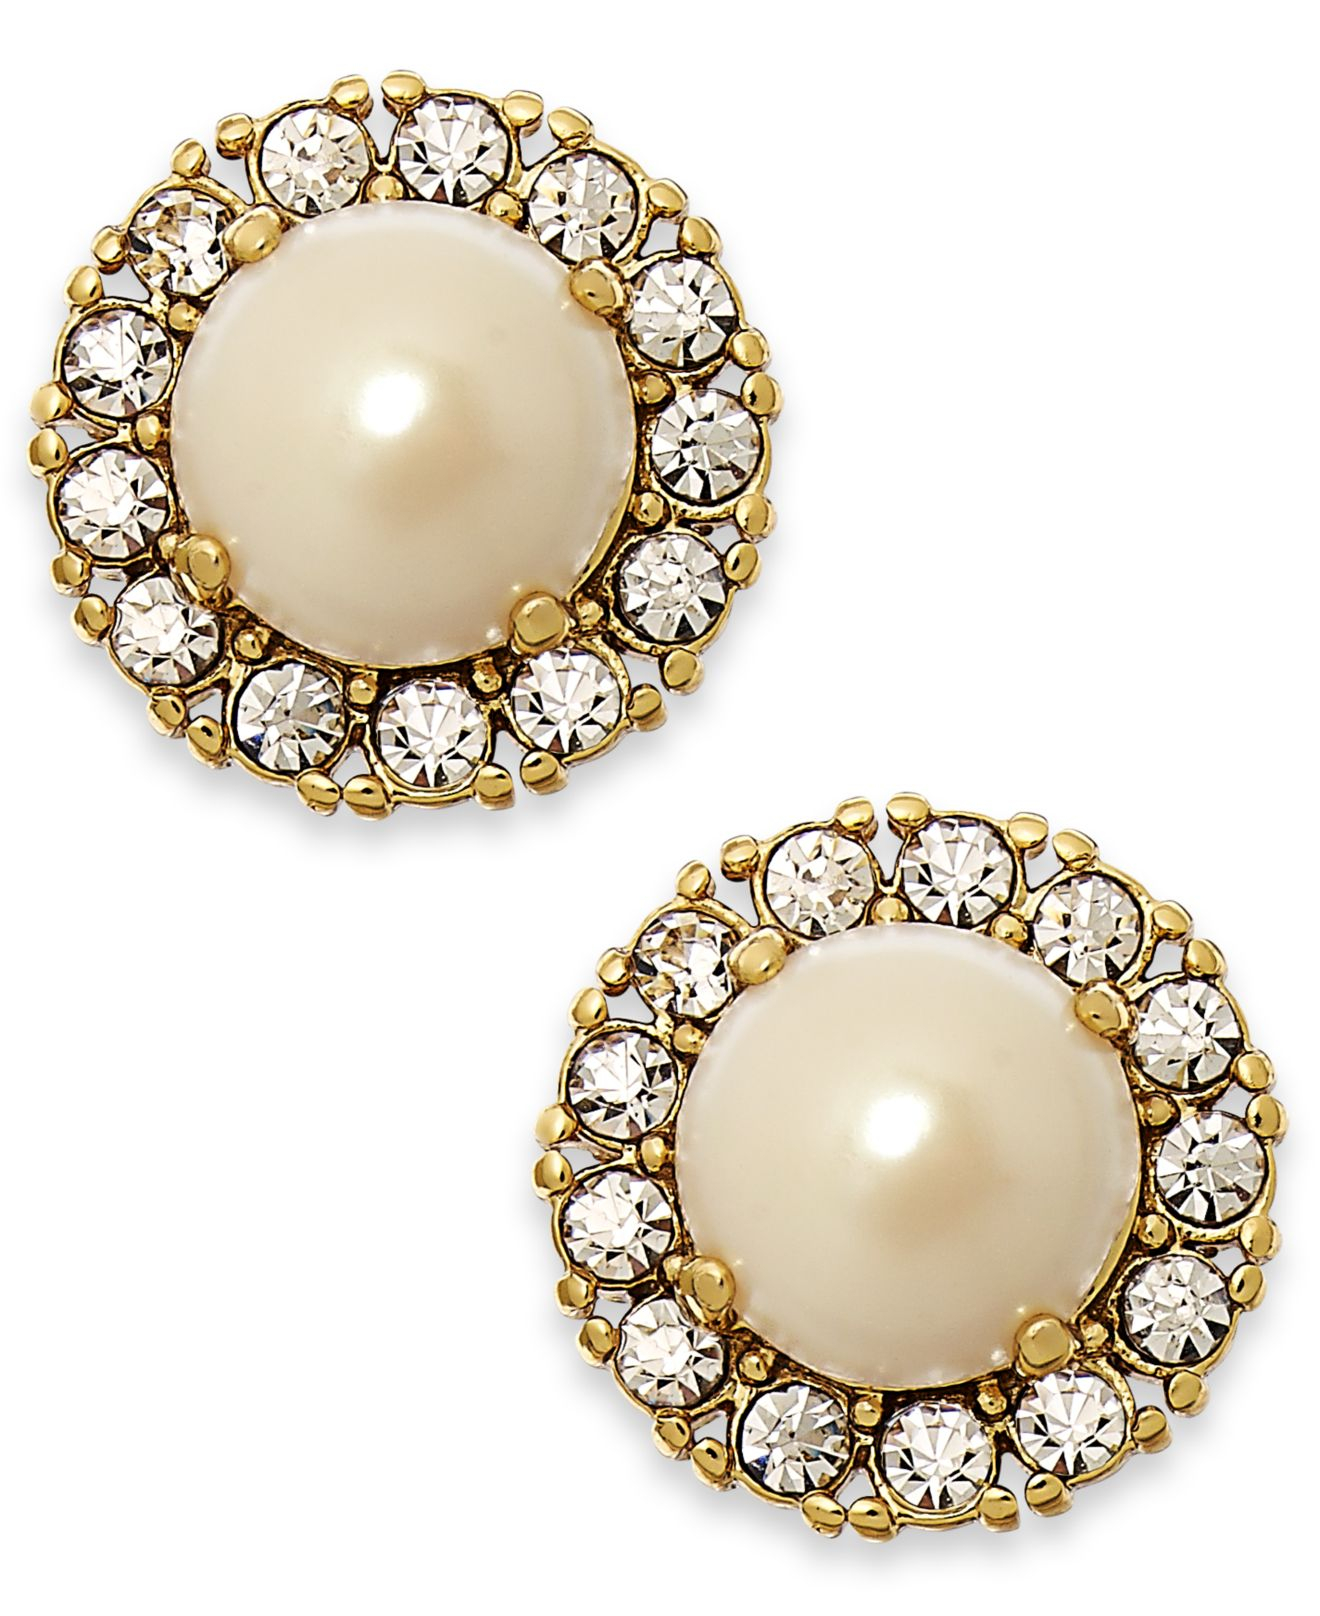 Kate spade new york Gold tone Round Crystal Pearl Stud Earrings in